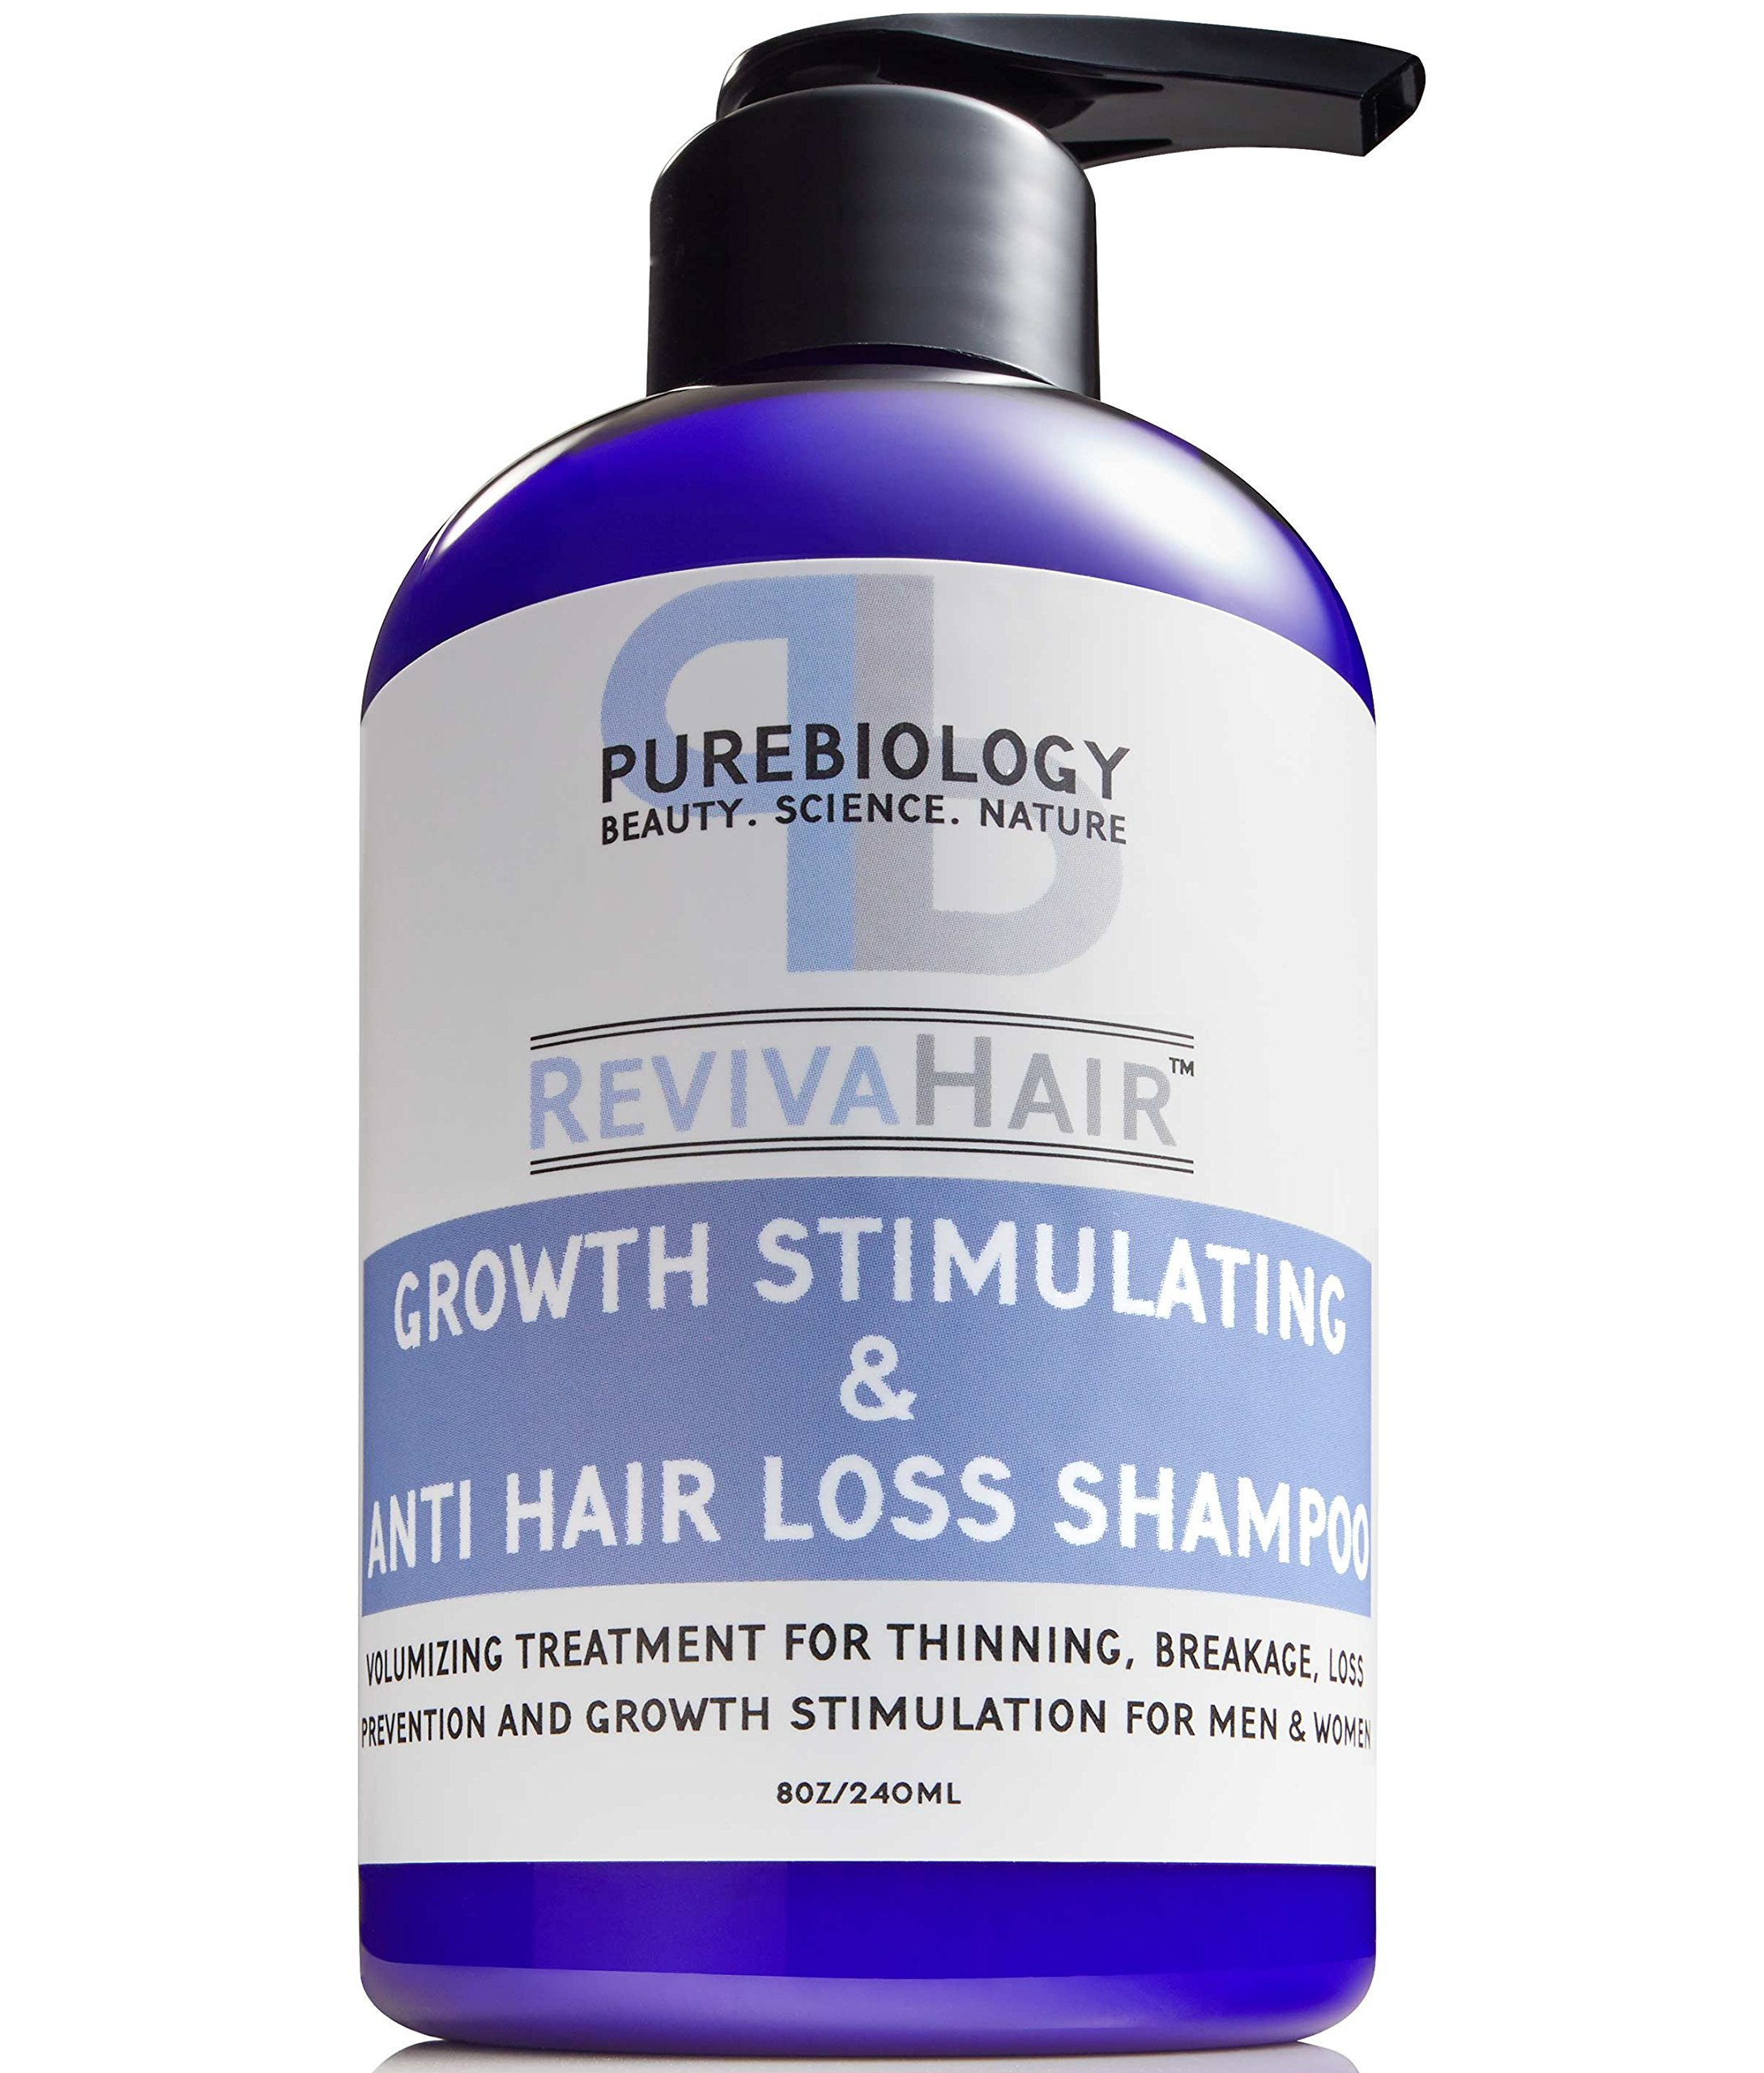 Hair Growth Stimulating Shampoo (Unisex) with Biotin, Keratin & Breakthrough Anti Hair Loss Complex - For men & women by Pure Biology